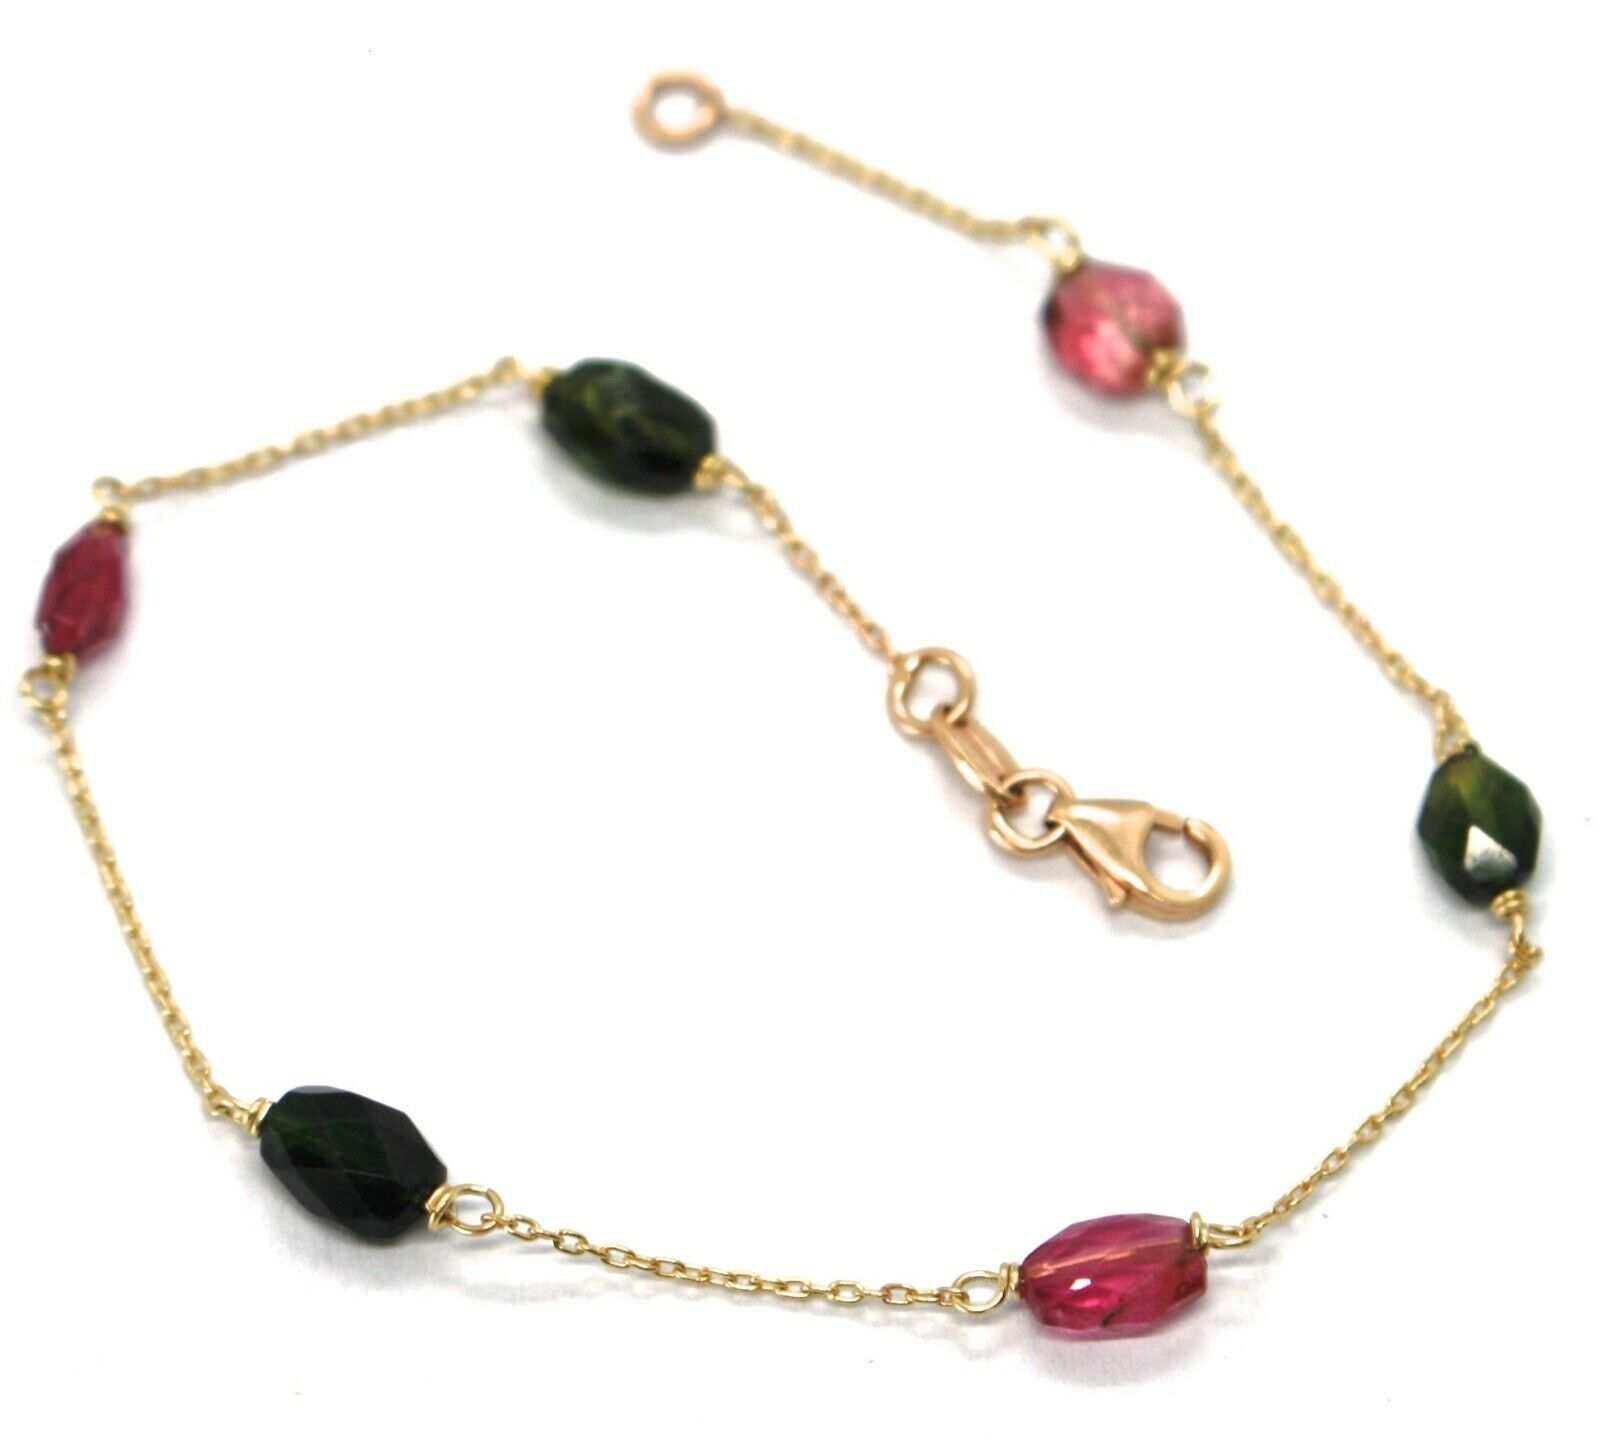 18K ROSE & YELLOW GOLD BRACELET, PURPLE & GREEN OVAL FACETED TOURMALINE